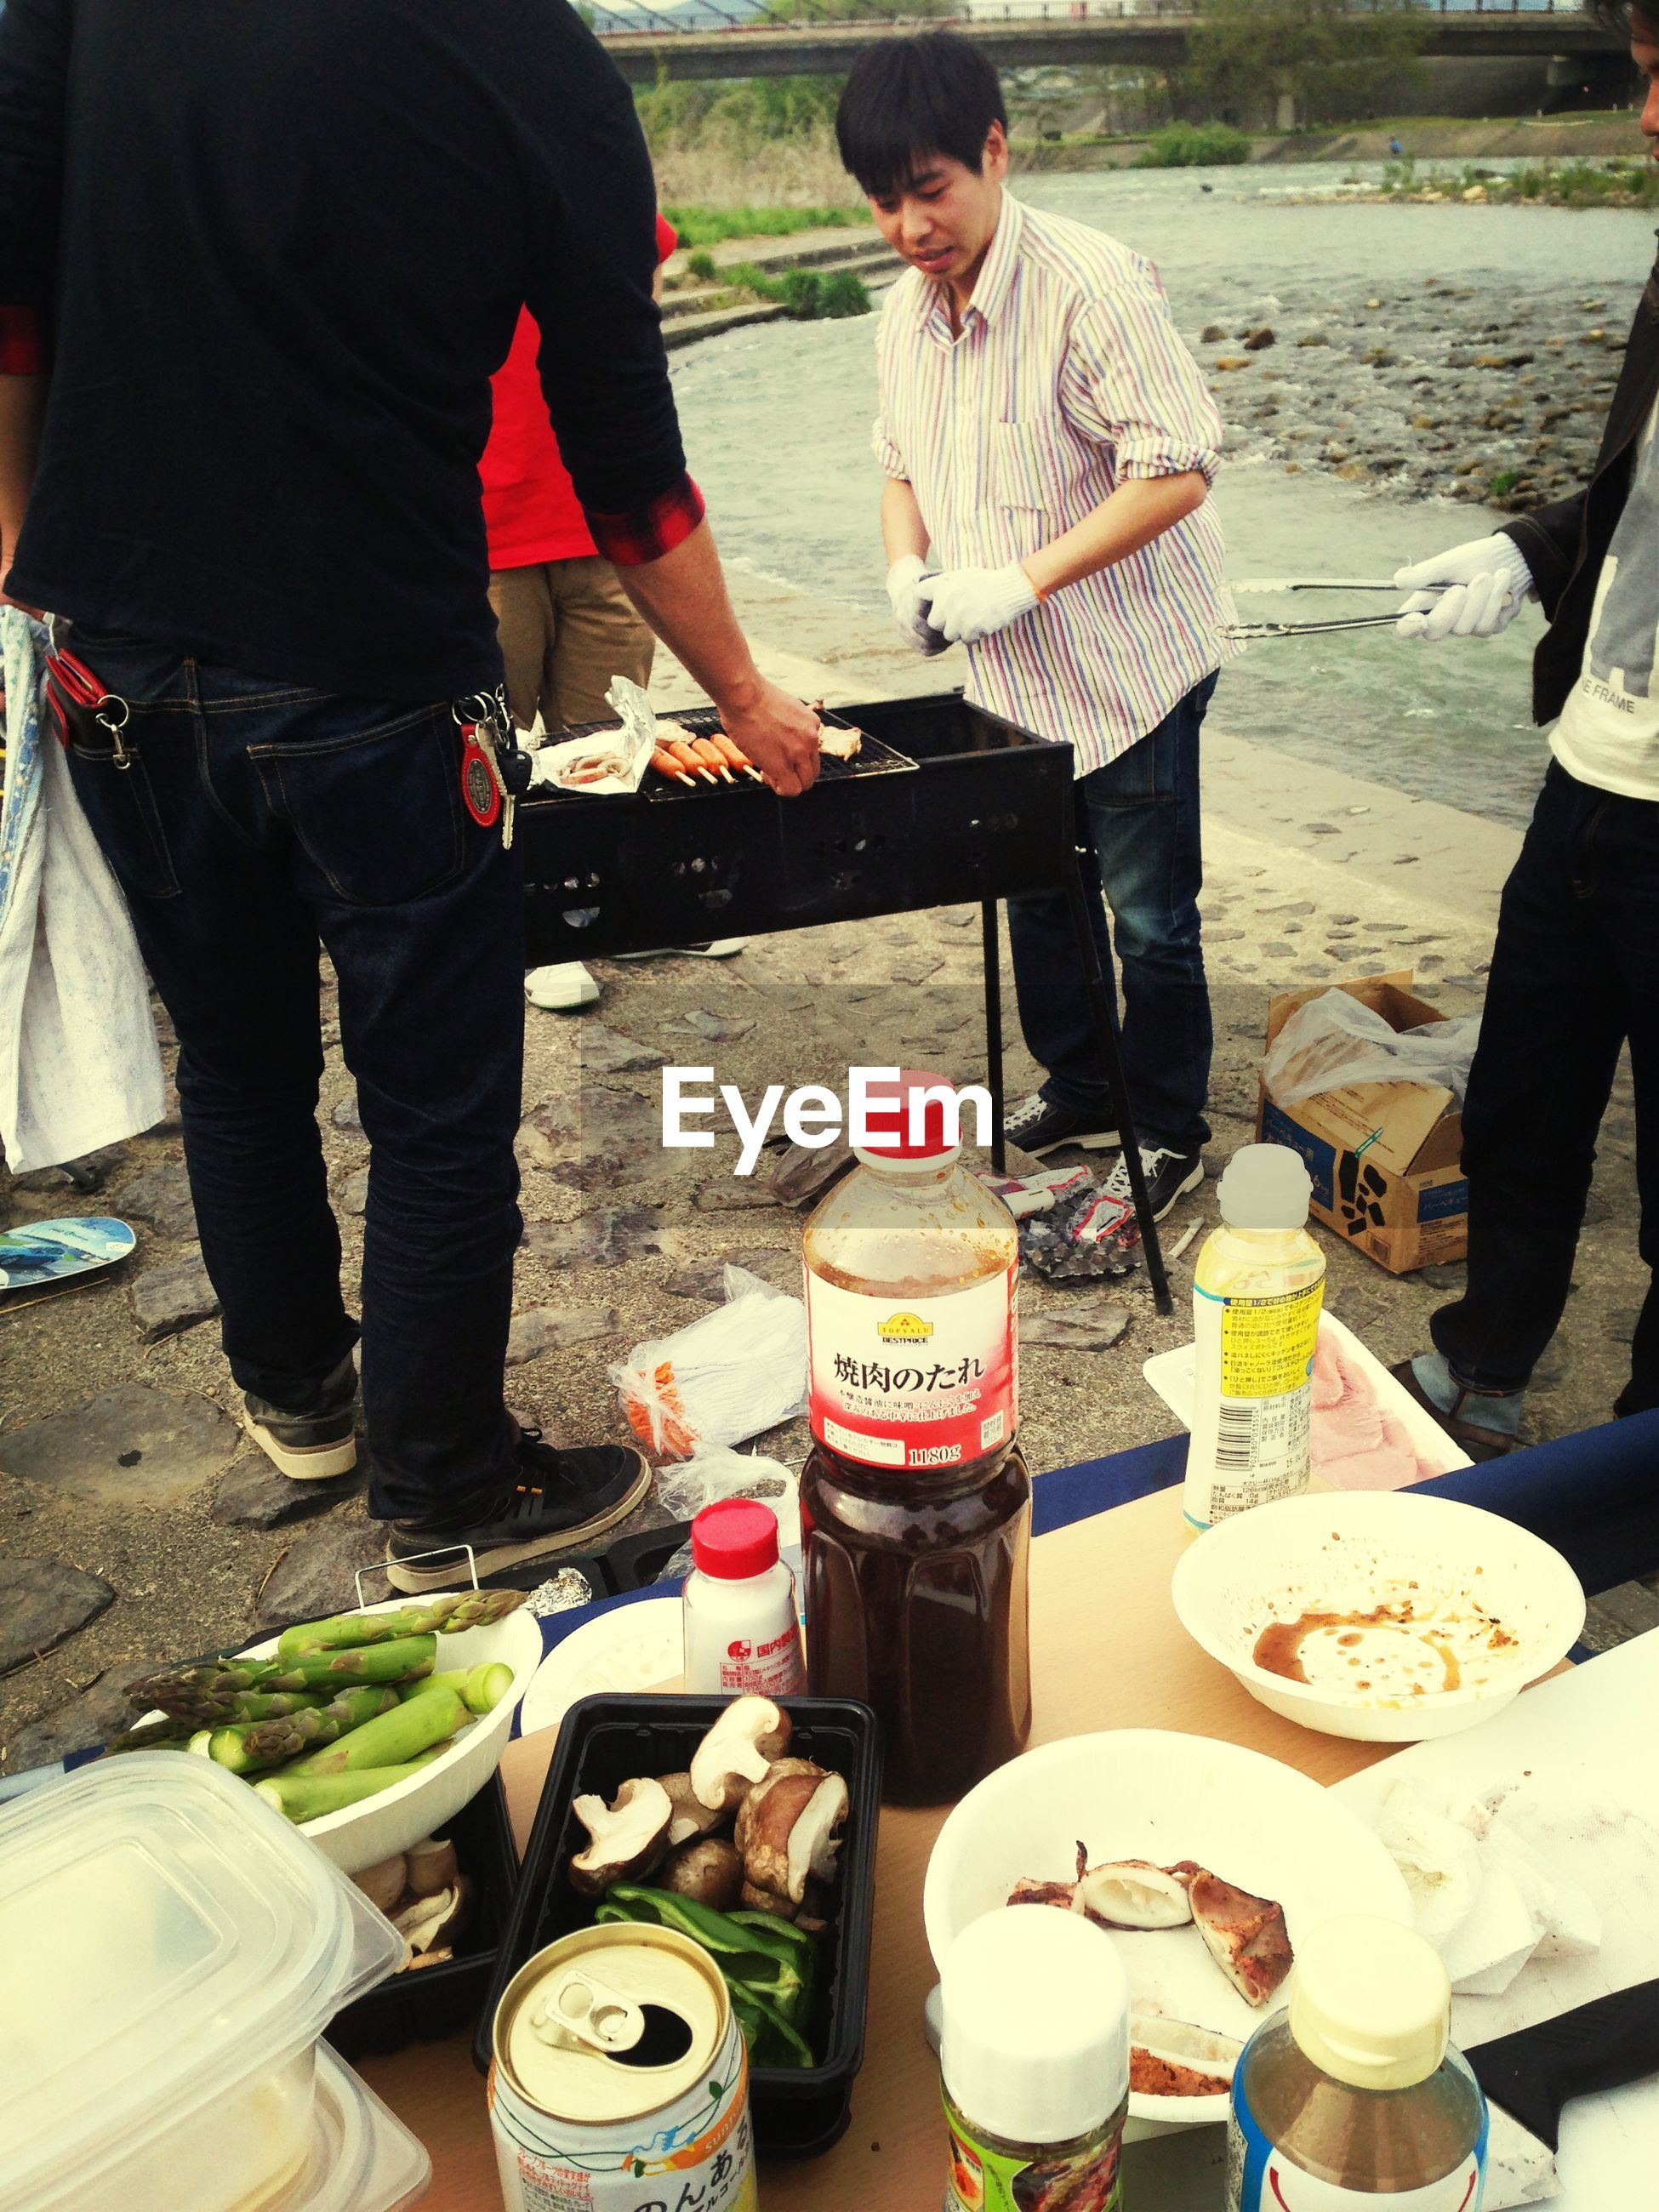 lifestyles, leisure activity, men, casual clothing, sitting, food and drink, drink, holding, person, standing, boys, day, table, incidental people, outdoors, childhood, working